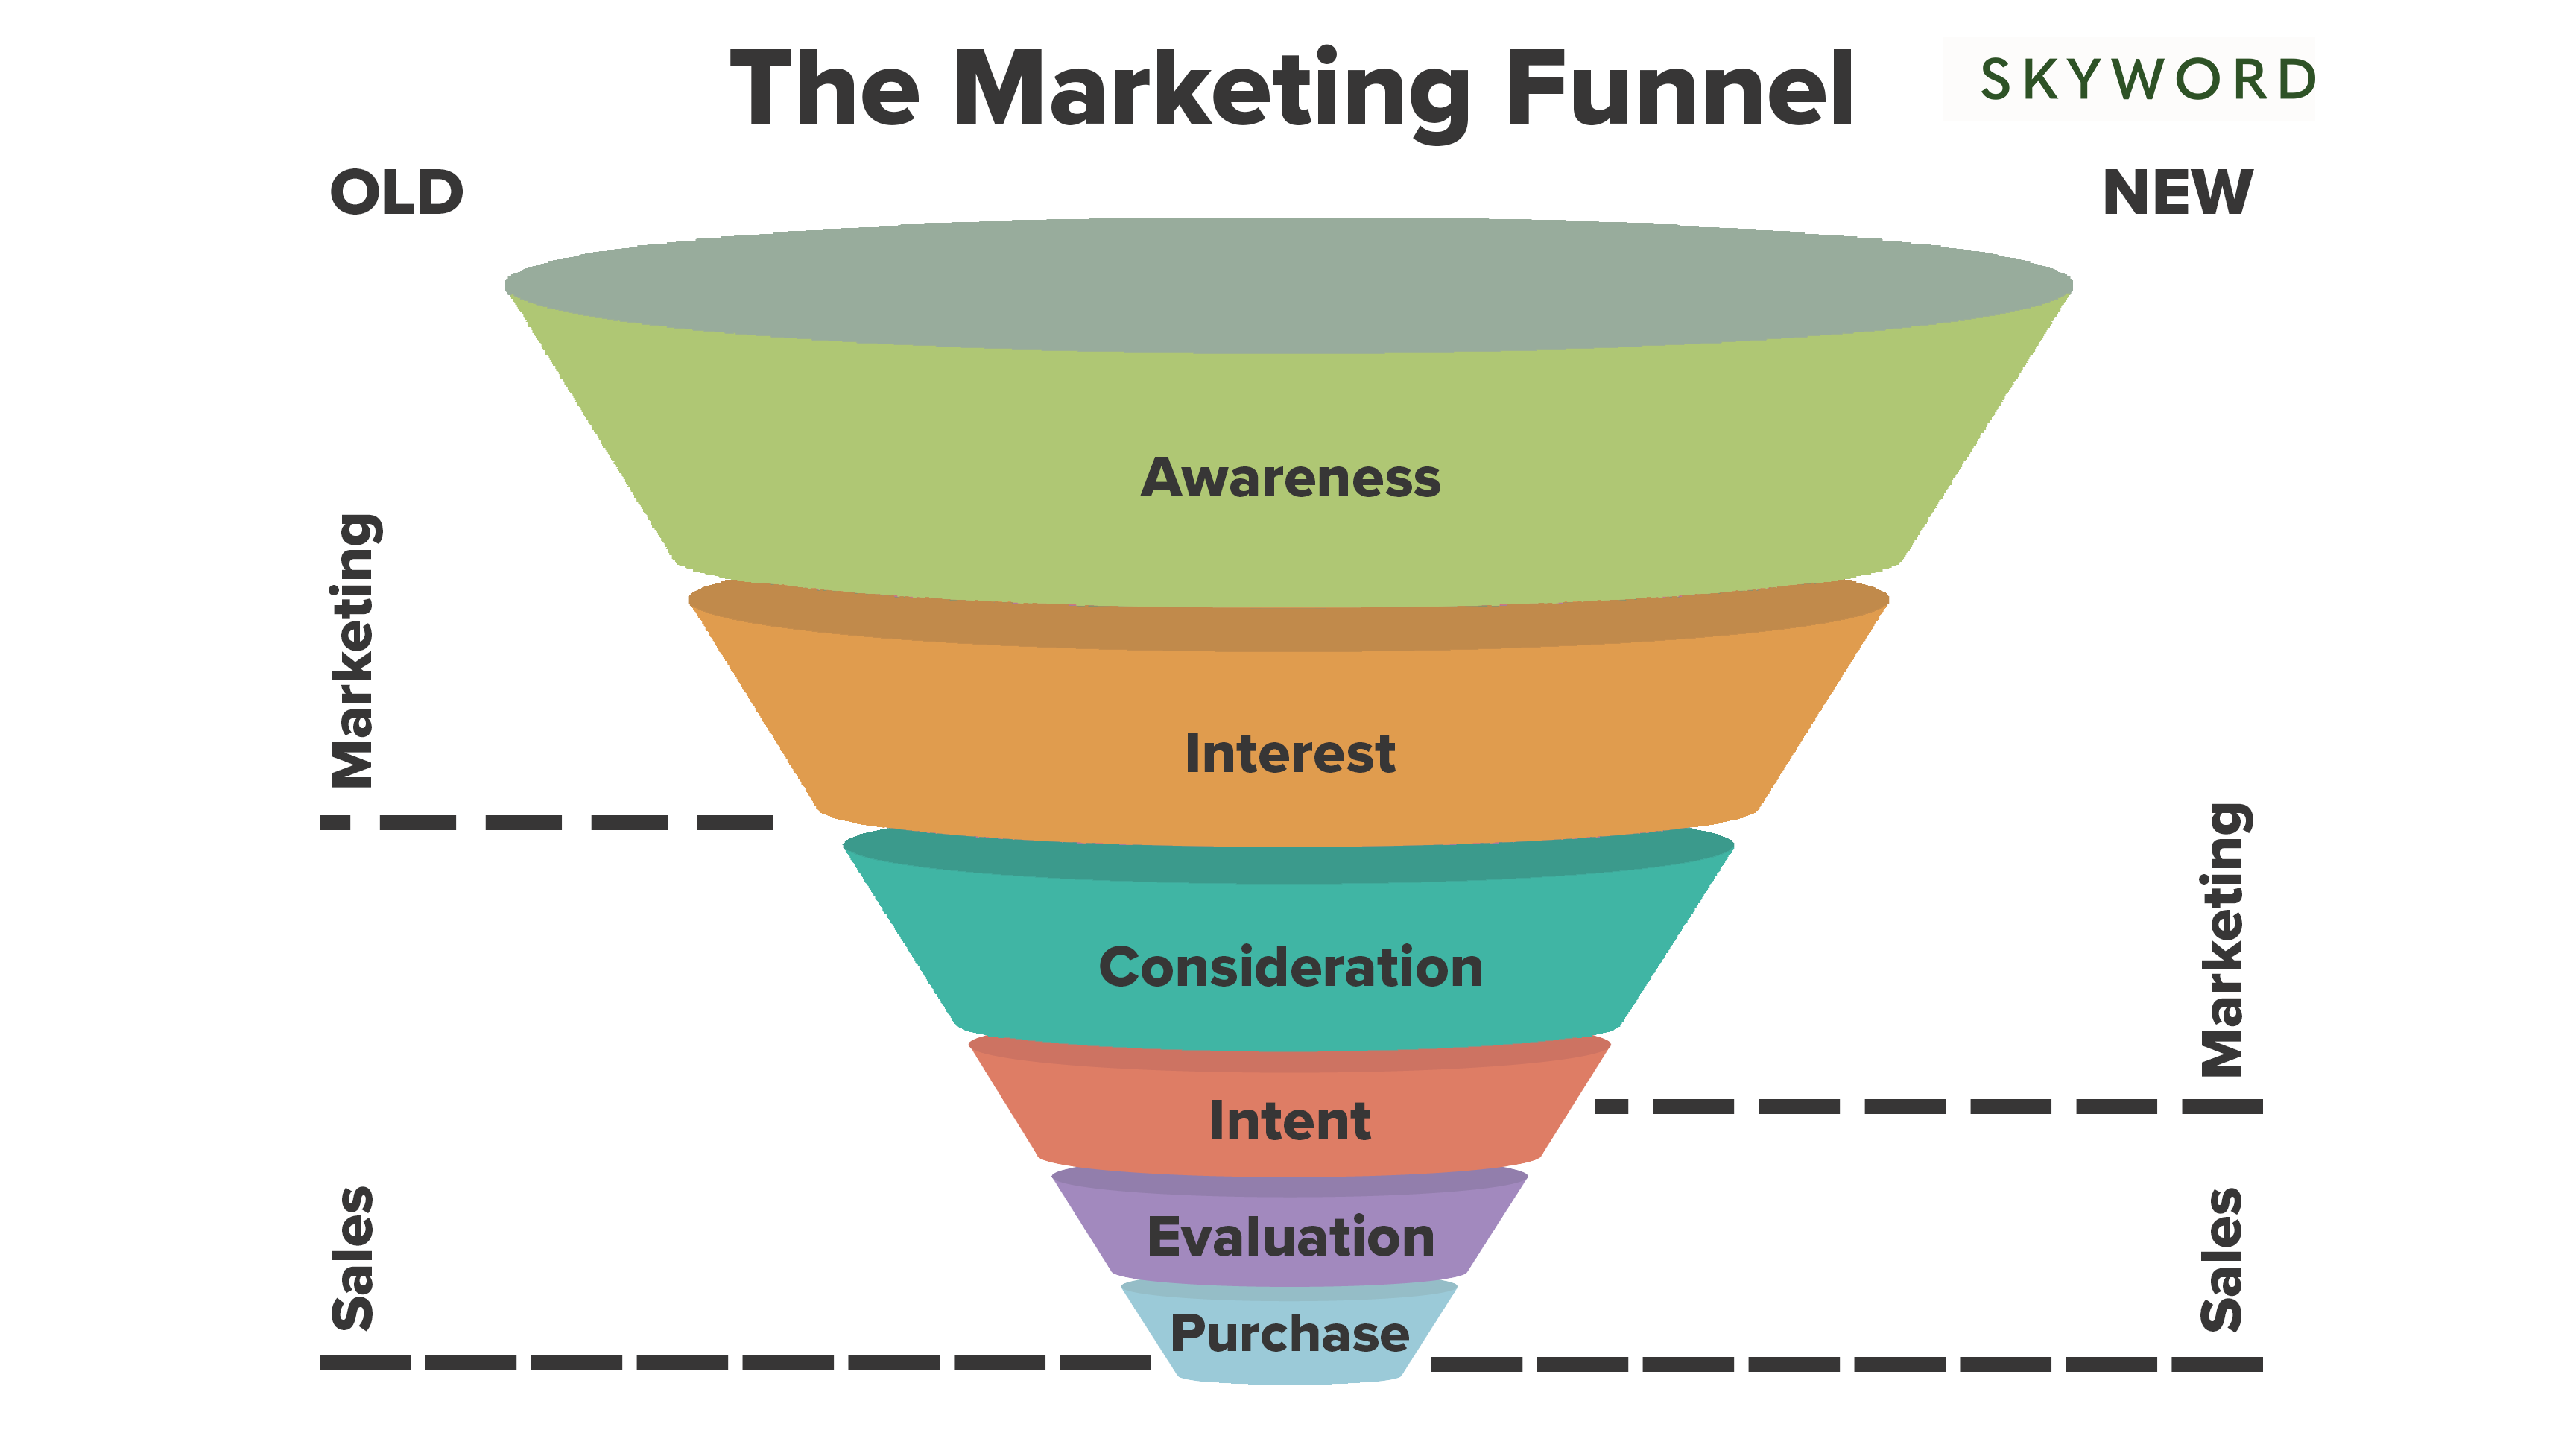 old and new marketing funnel diagram